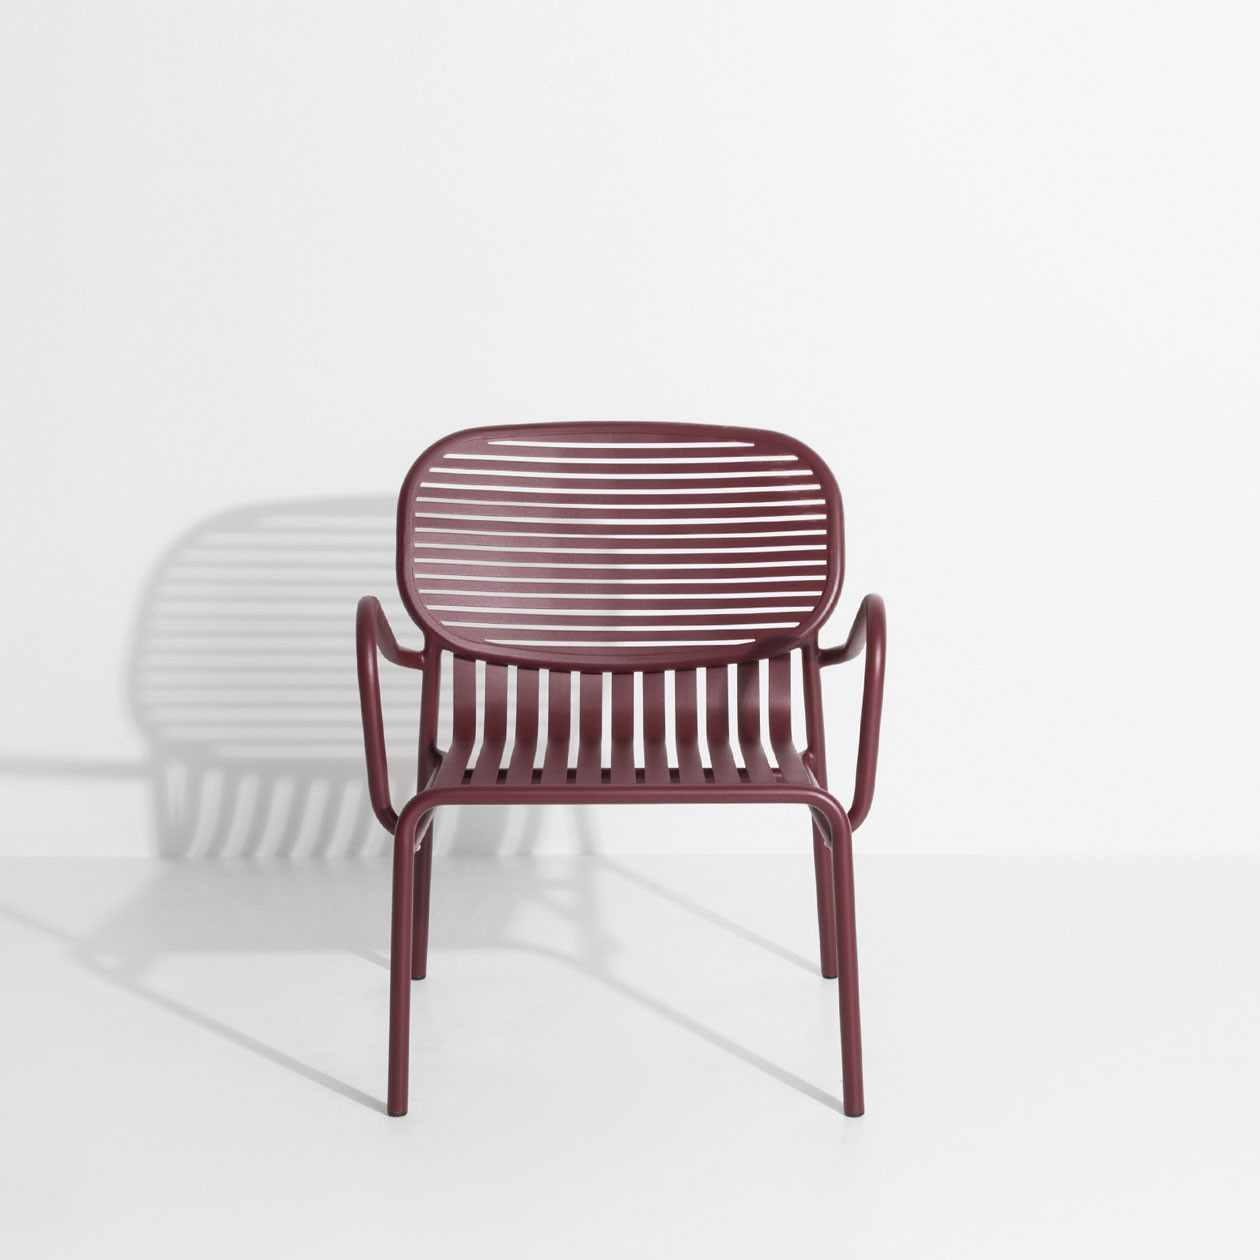 Petite Friture Week-end Lounge Chair Outdoor